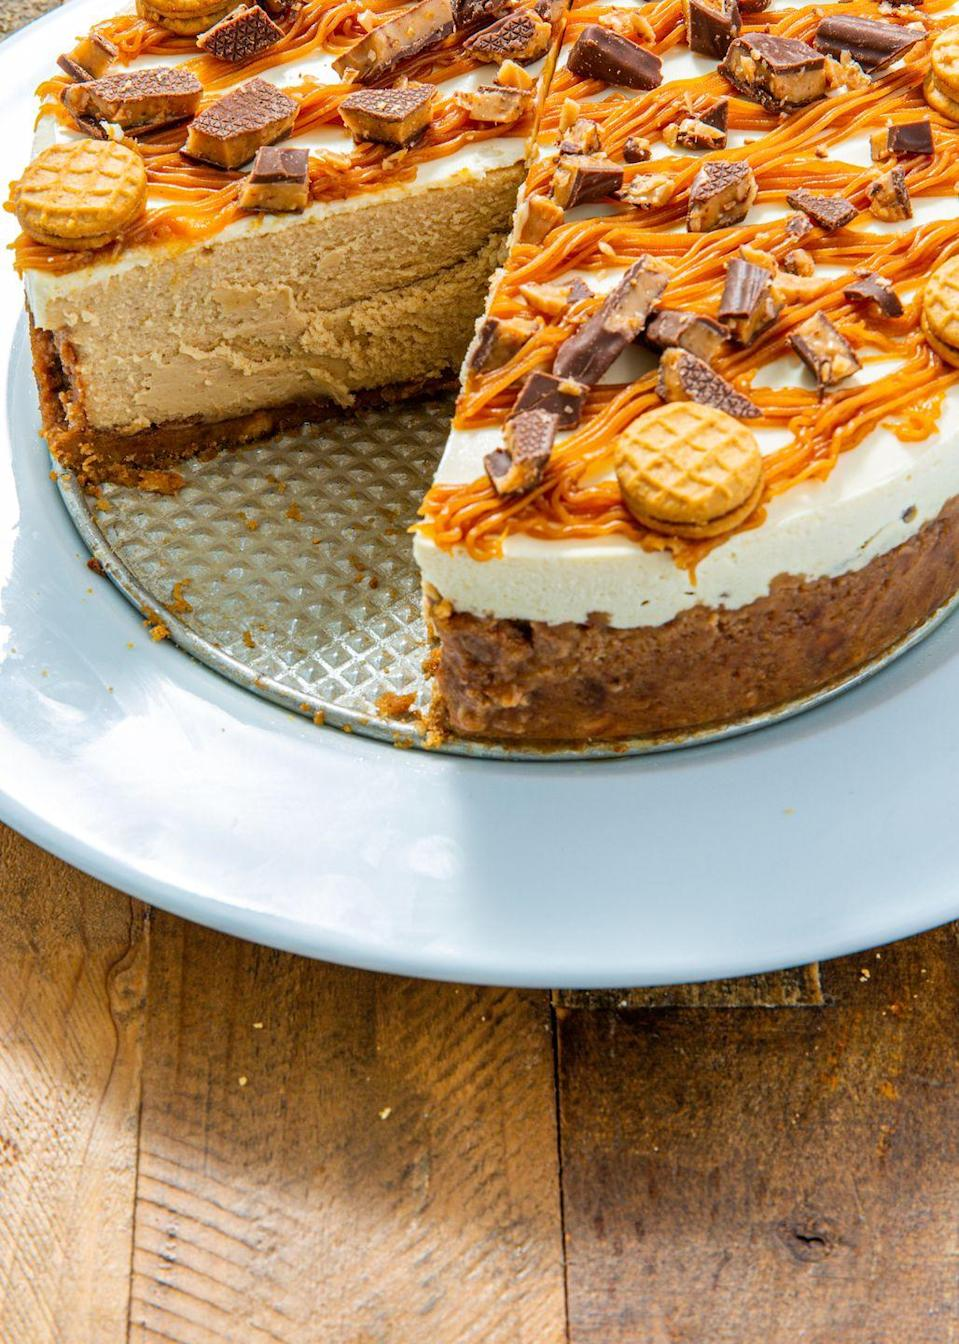 """<p>There's no such thing as too much peanut butter. </p><p>Get the recipe from <a href=""""https://www.delish.com/cooking/recipe-ideas/a29667085/nutter-butter-cheesecake-recipe/"""" rel=""""nofollow noopener"""" target=""""_blank"""" data-ylk=""""slk:Delish"""" class=""""link rapid-noclick-resp"""">Delish</a>. </p>"""